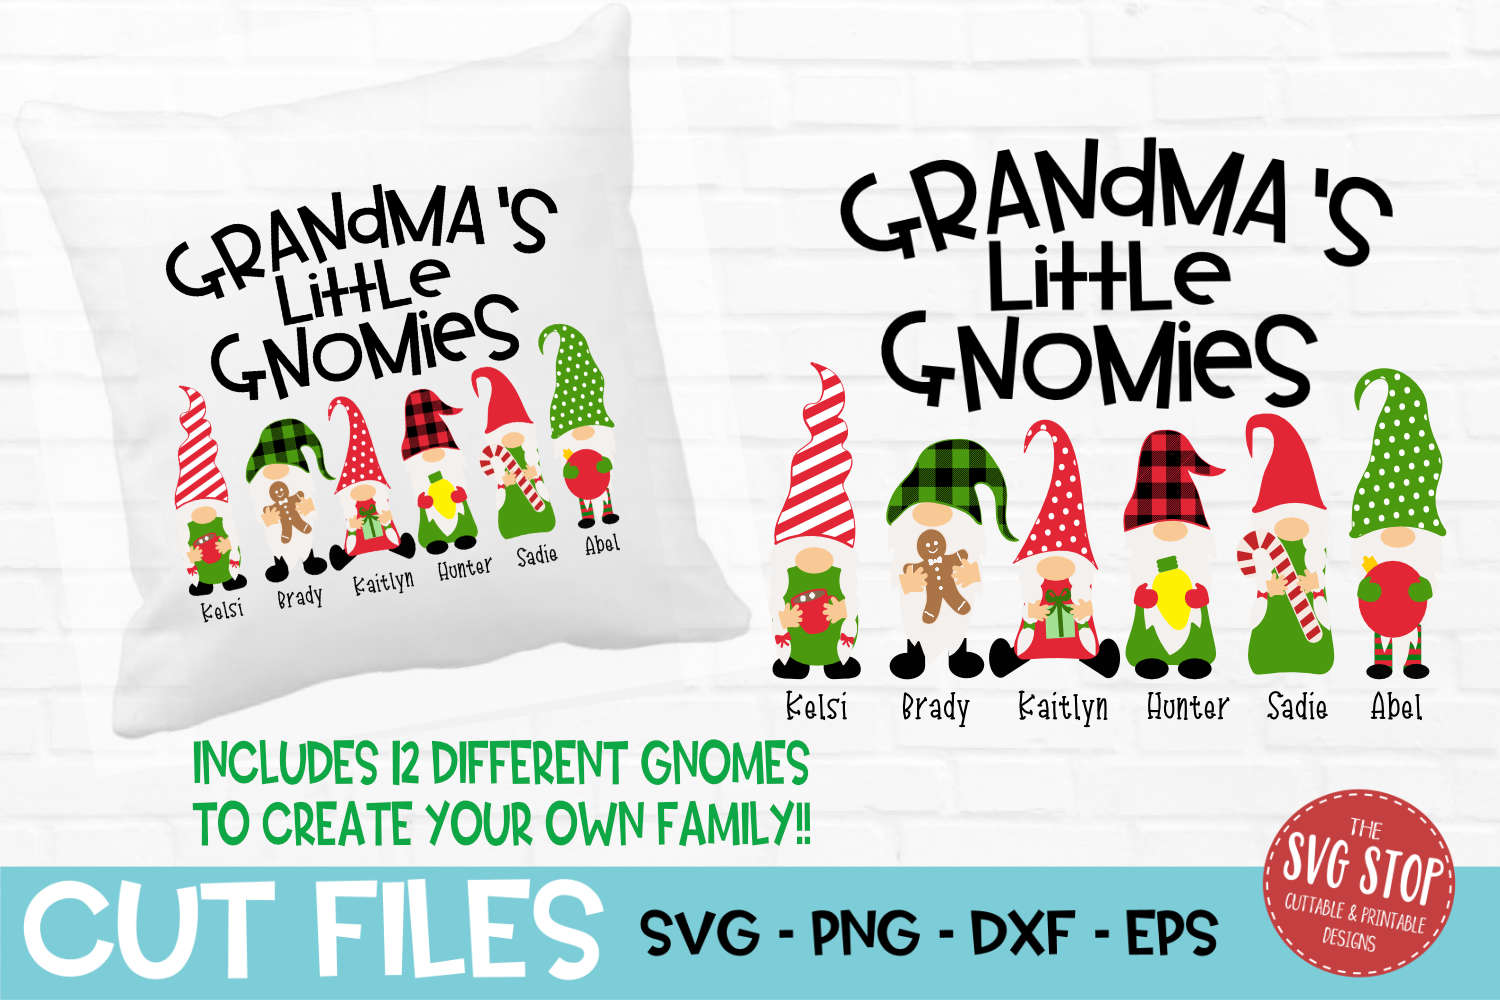 Grandma's Little Gnomies Christmas SVG, PNG, DXF, EPS example image 1